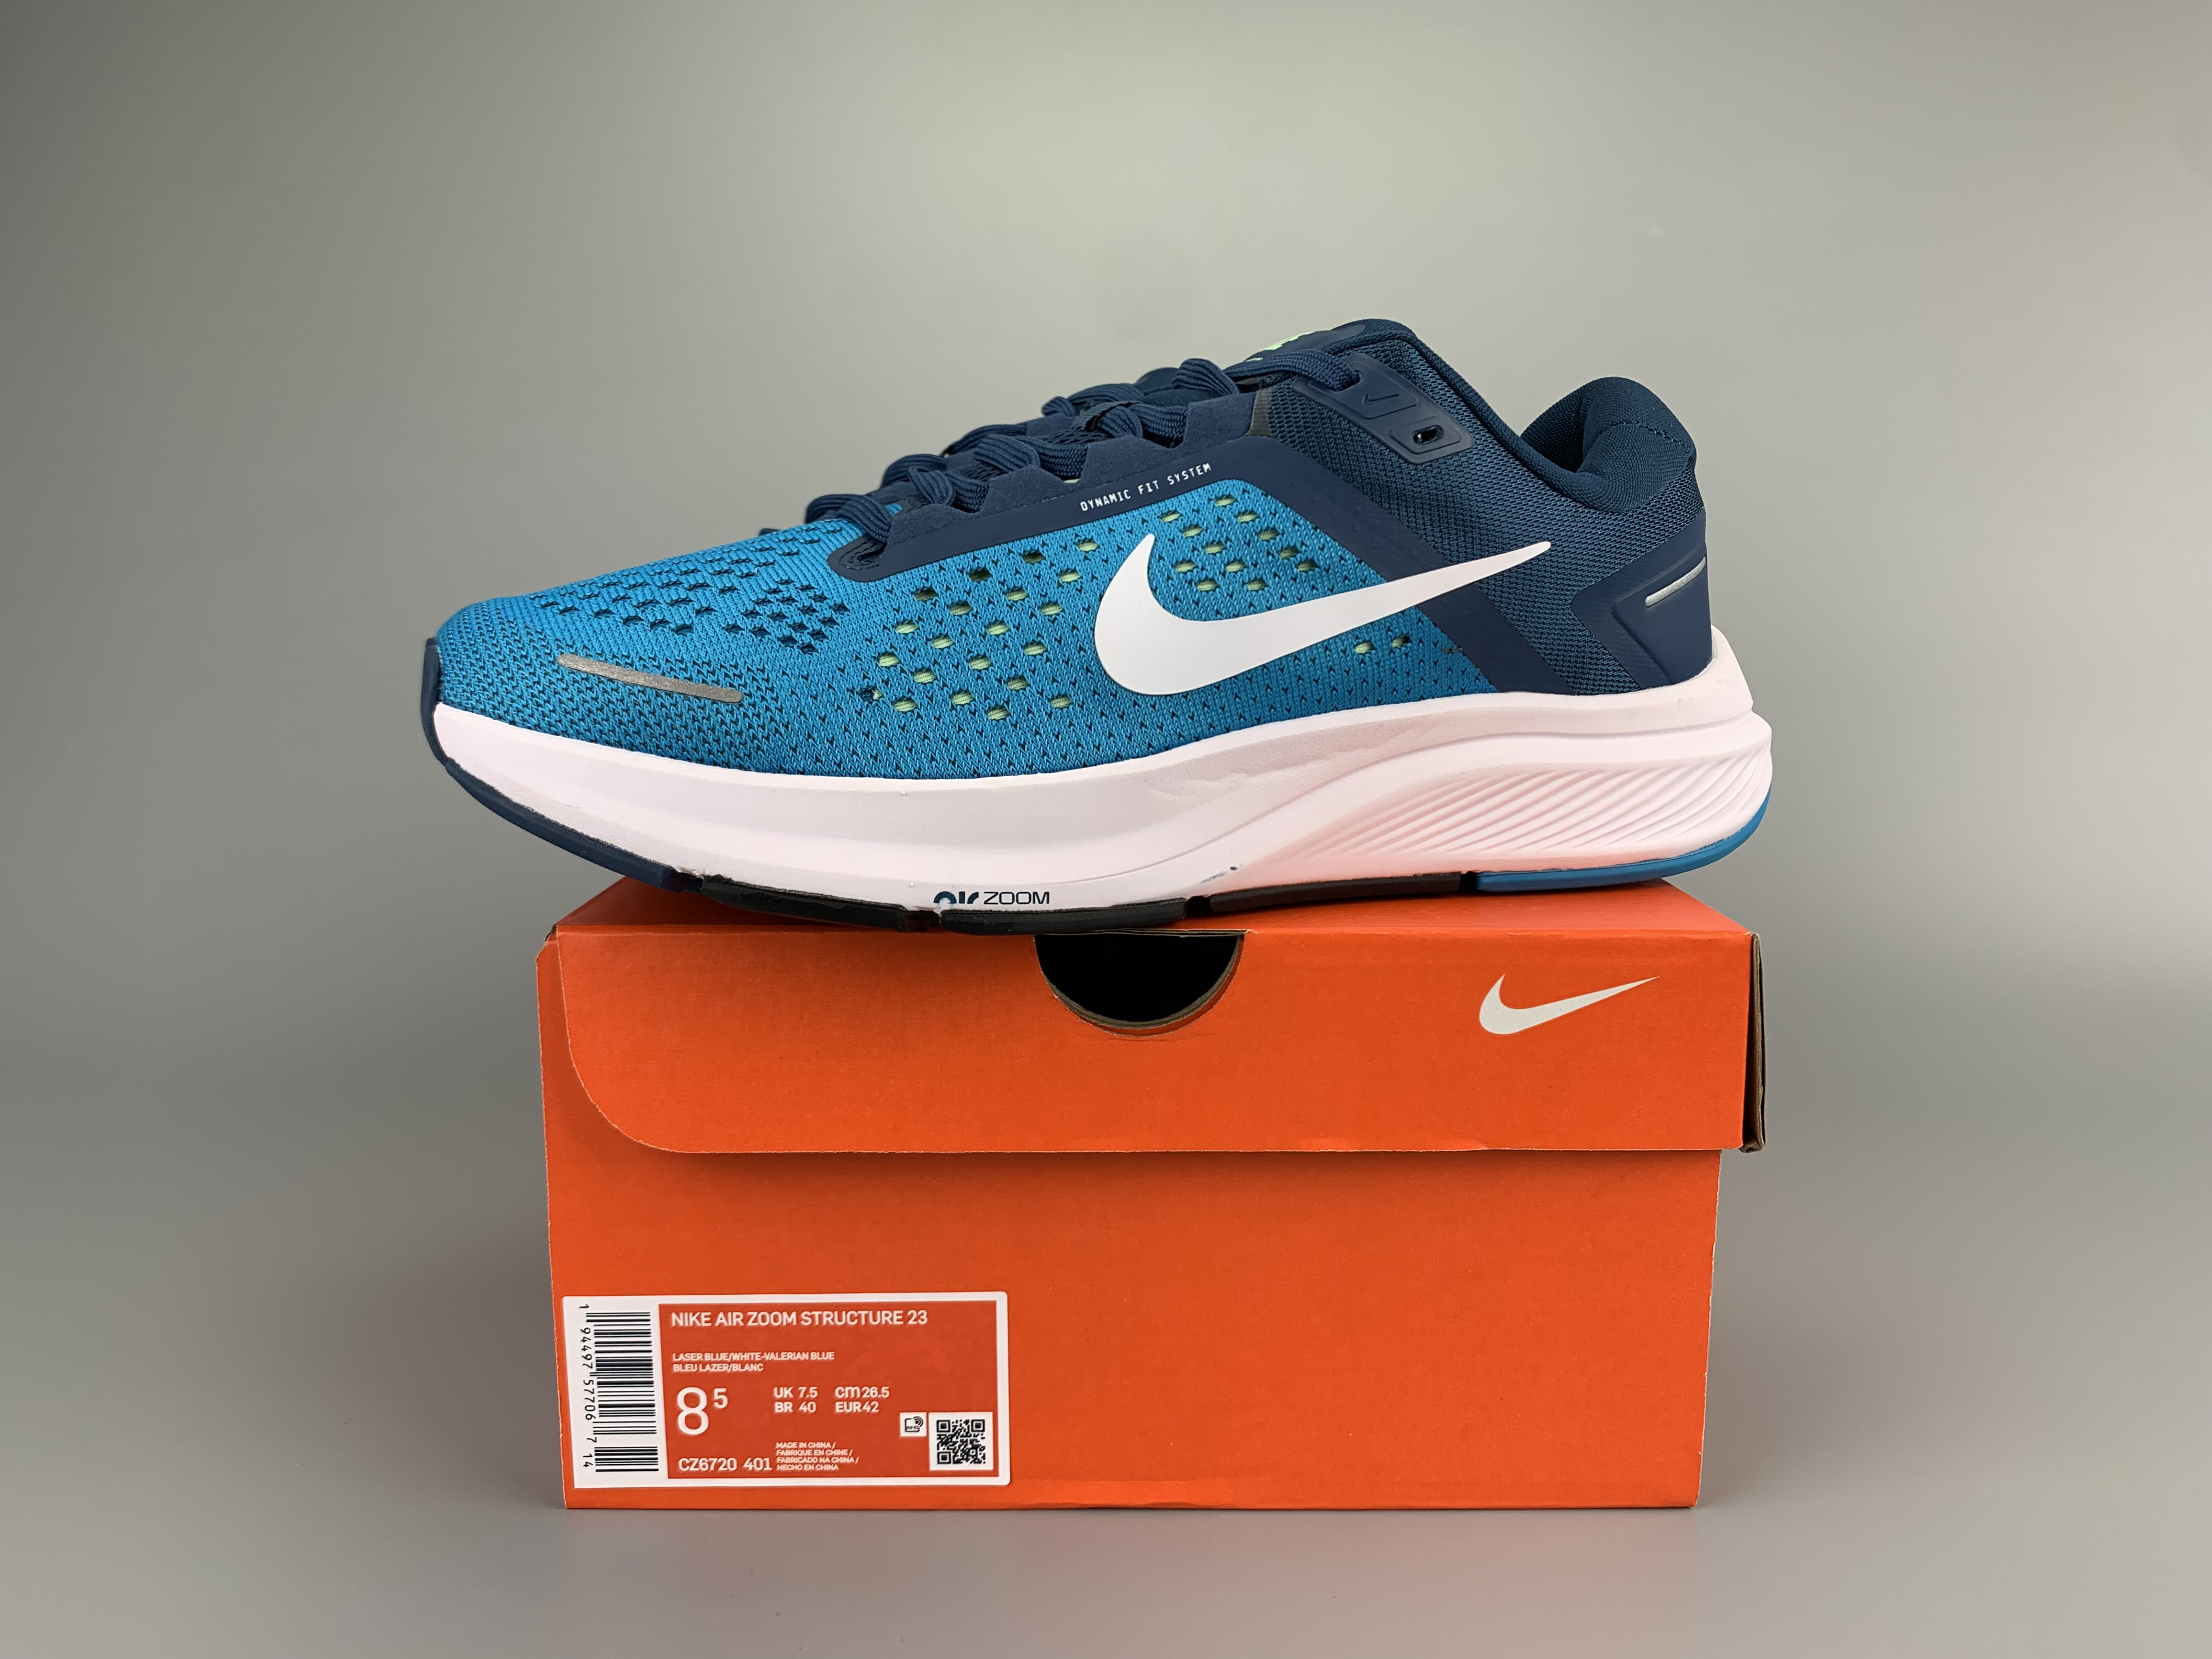 Nike Zoom Structure 23 Blue White Shoes